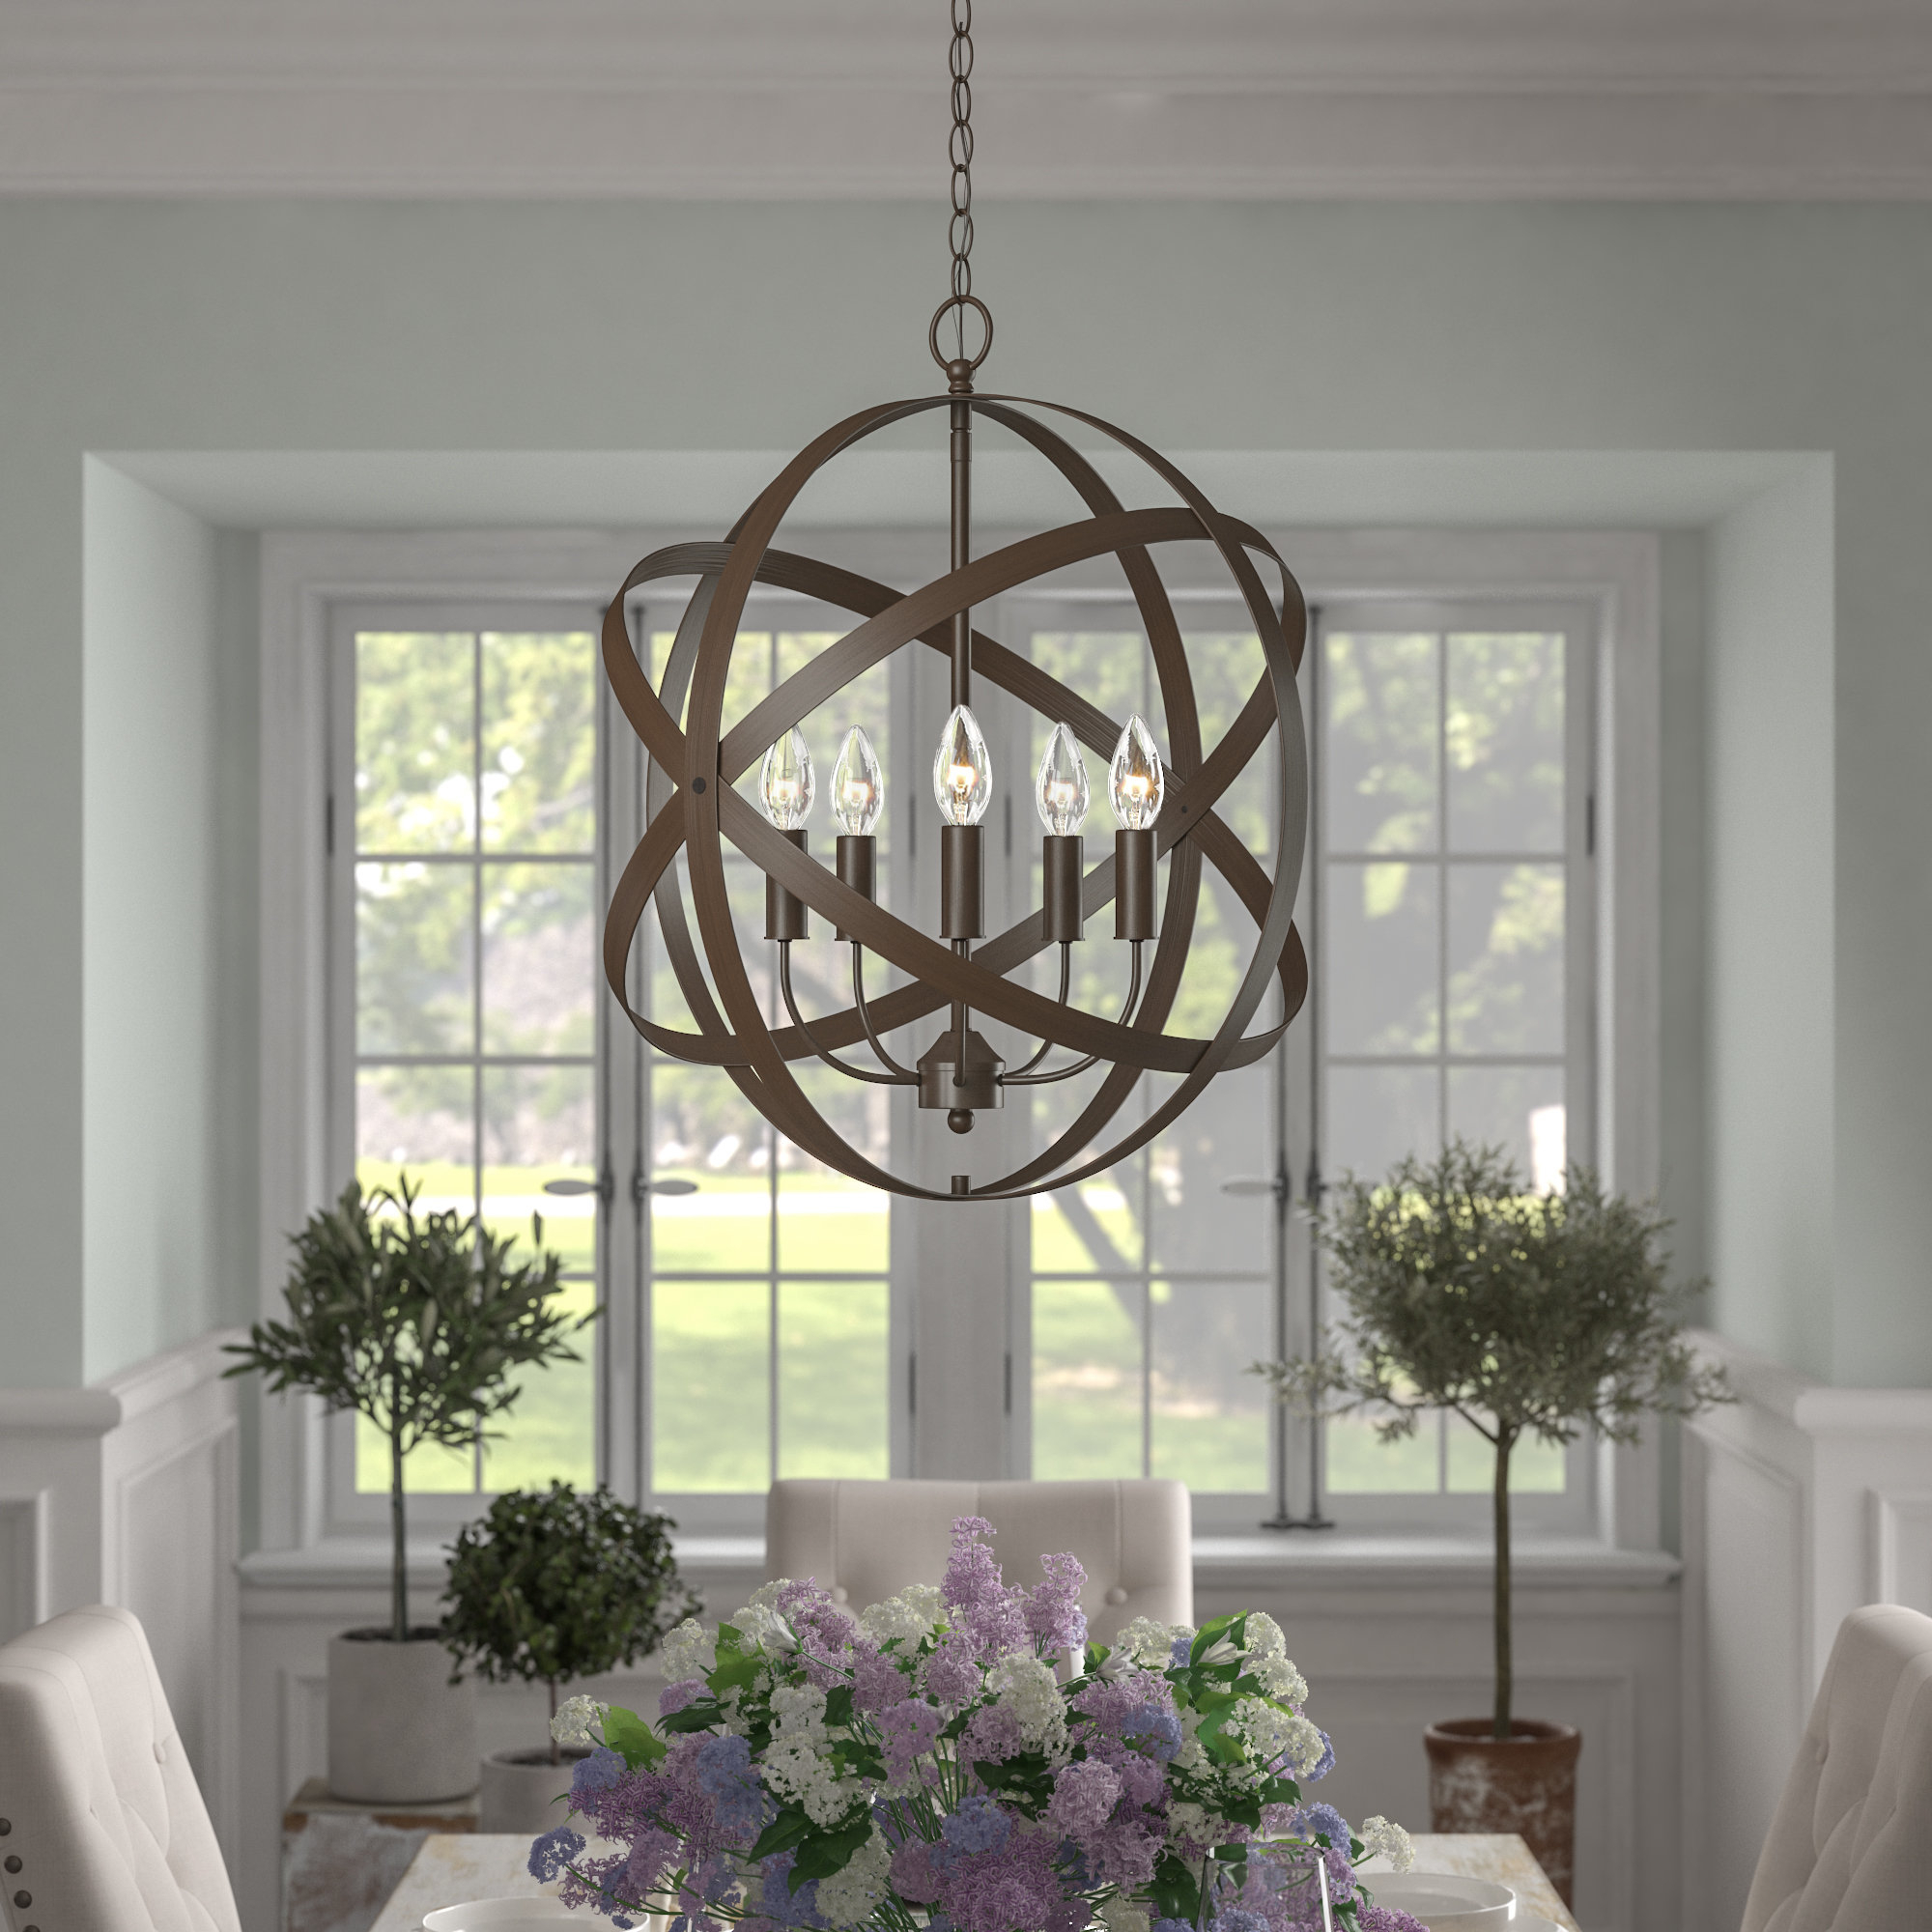 Waldron 5 Light Globe Chandeliers Inside Preferred Della 5 Light Globe Chandelier (View 6 of 20)